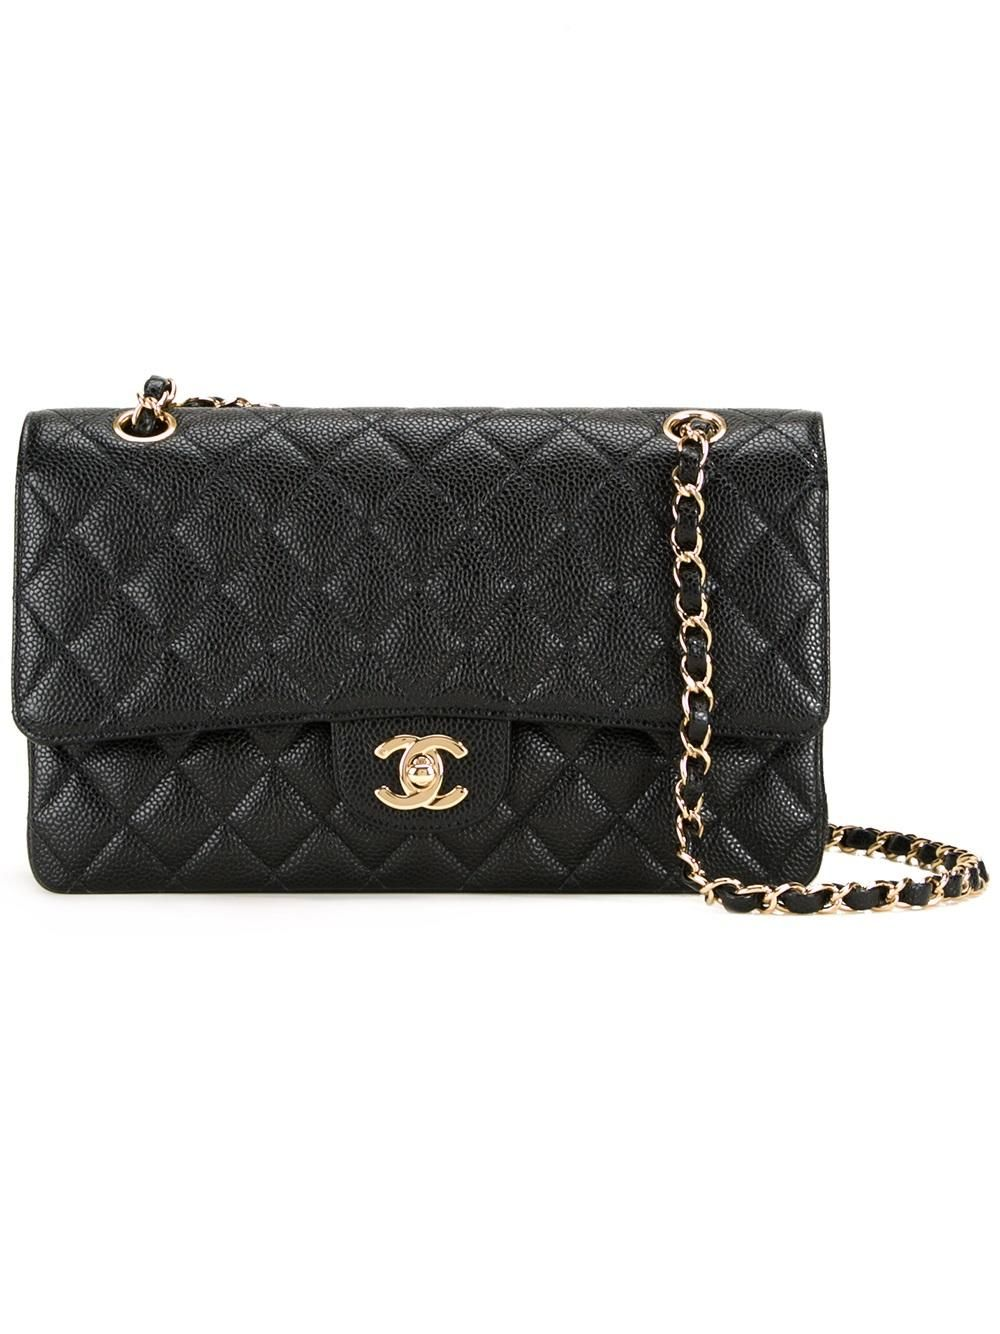 76604c51f4f93 Fashion blogger Veronika Lipar of Brunette From Wall Street sharing her  Luxury Valentine s Gift Guide for her - Vintage Chanel